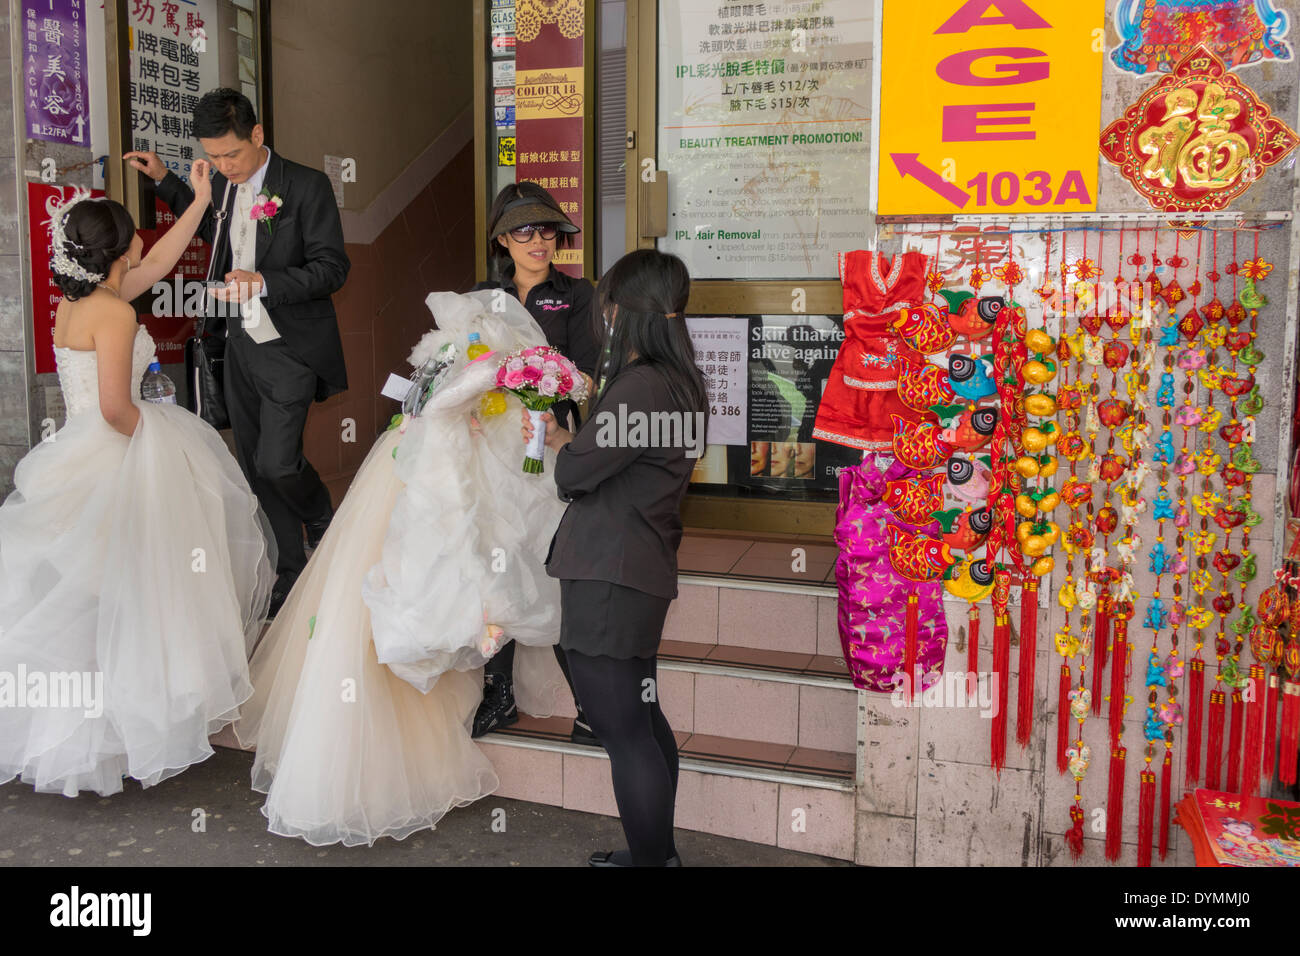 Sydney australia nsw new south wales haymarket chinatown asian woman sydney australia nsw new south wales haymarket chinatown asian woman man bride groom wedding dress white decorations sale souvenirs shopping junglespirit Choice Image